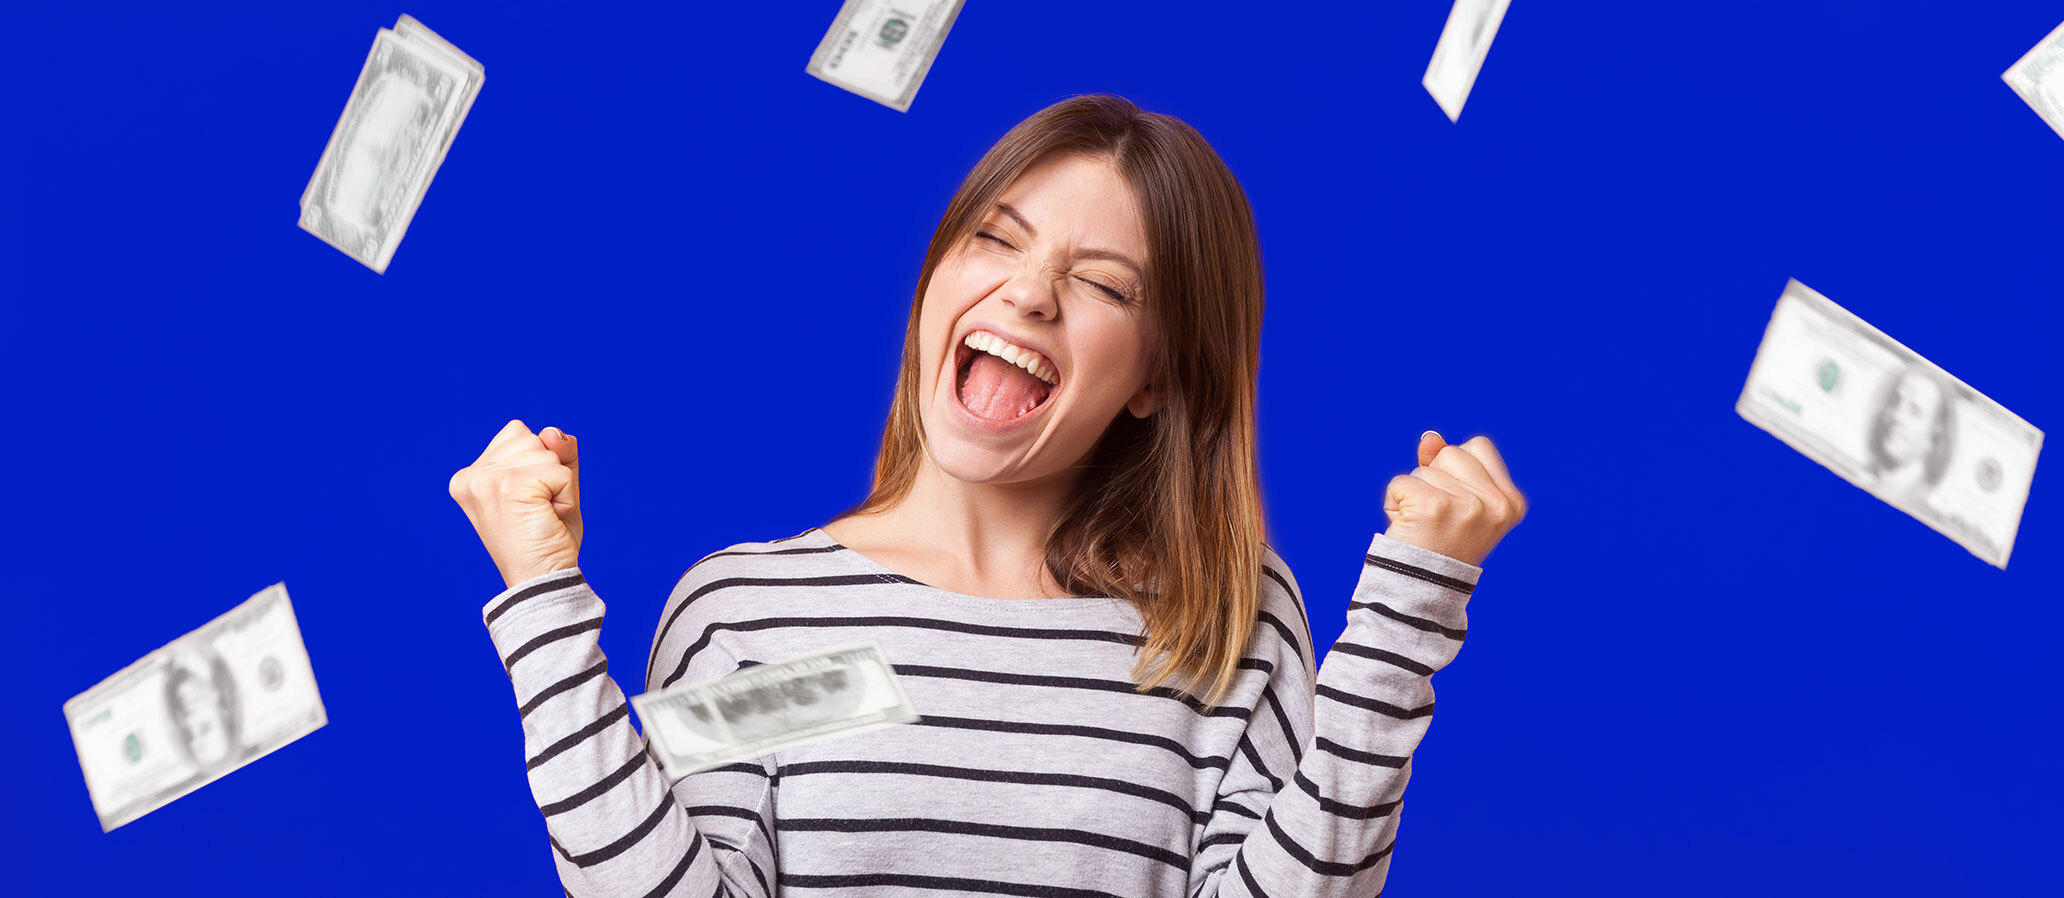 Happy woman, raining money. How to Save Up to $3,000 Per Year on Your Mortgage with RefiNow